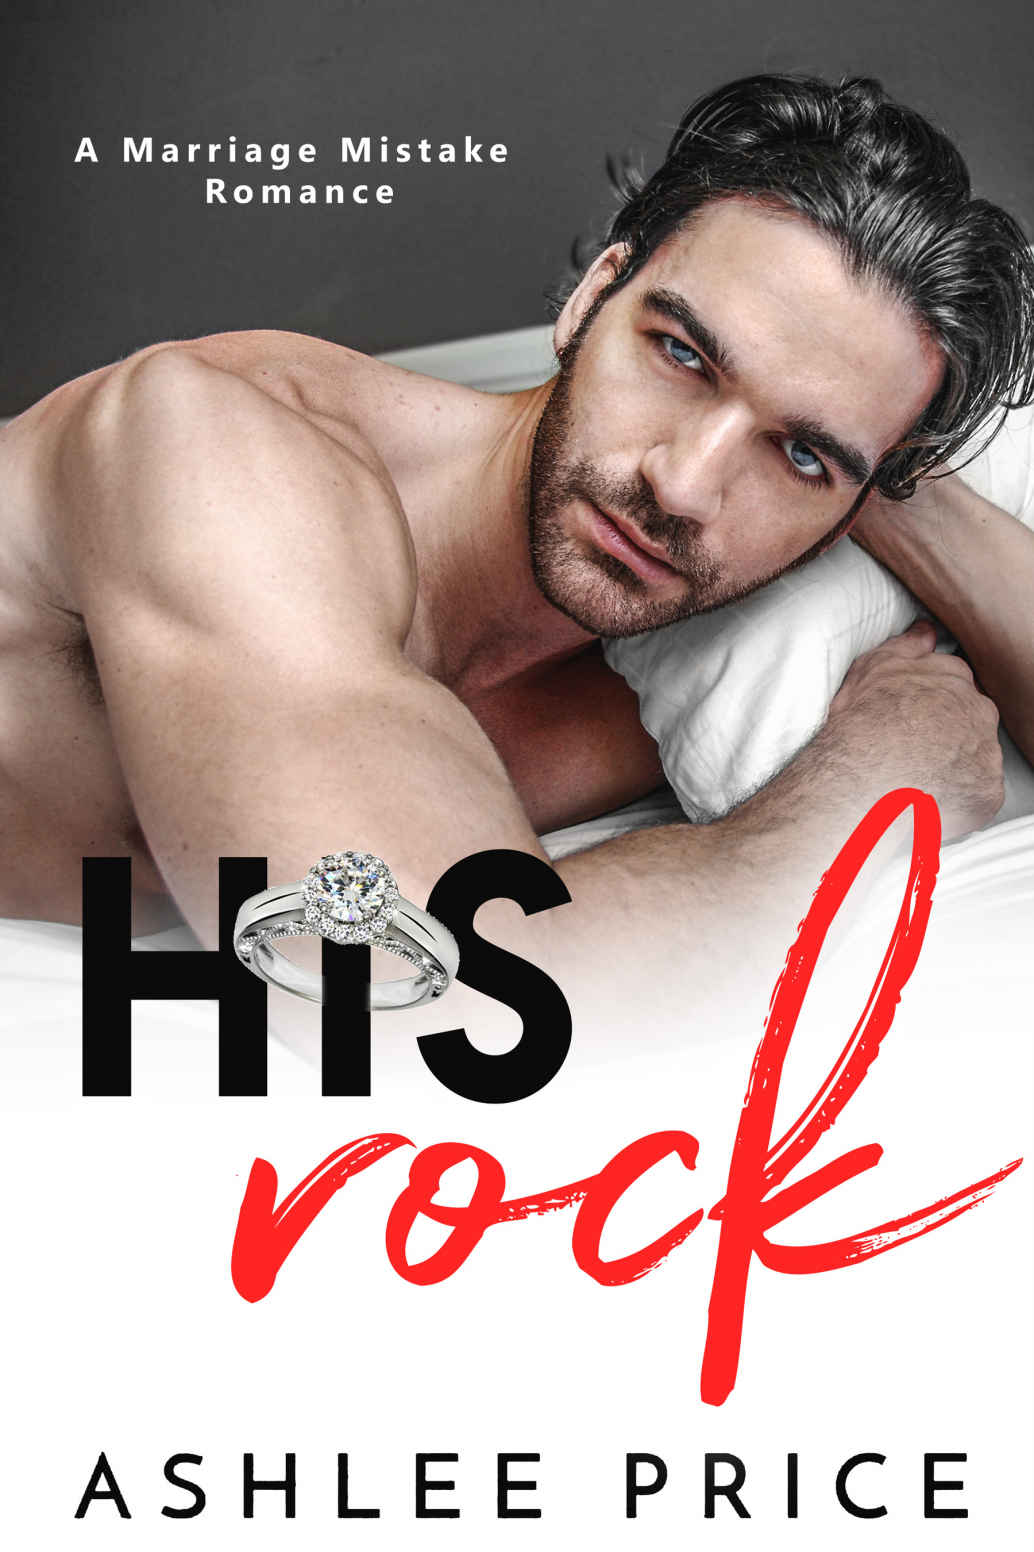 His Rock: A Marriage Mistake Romance 1st Edition Pdf Free Download